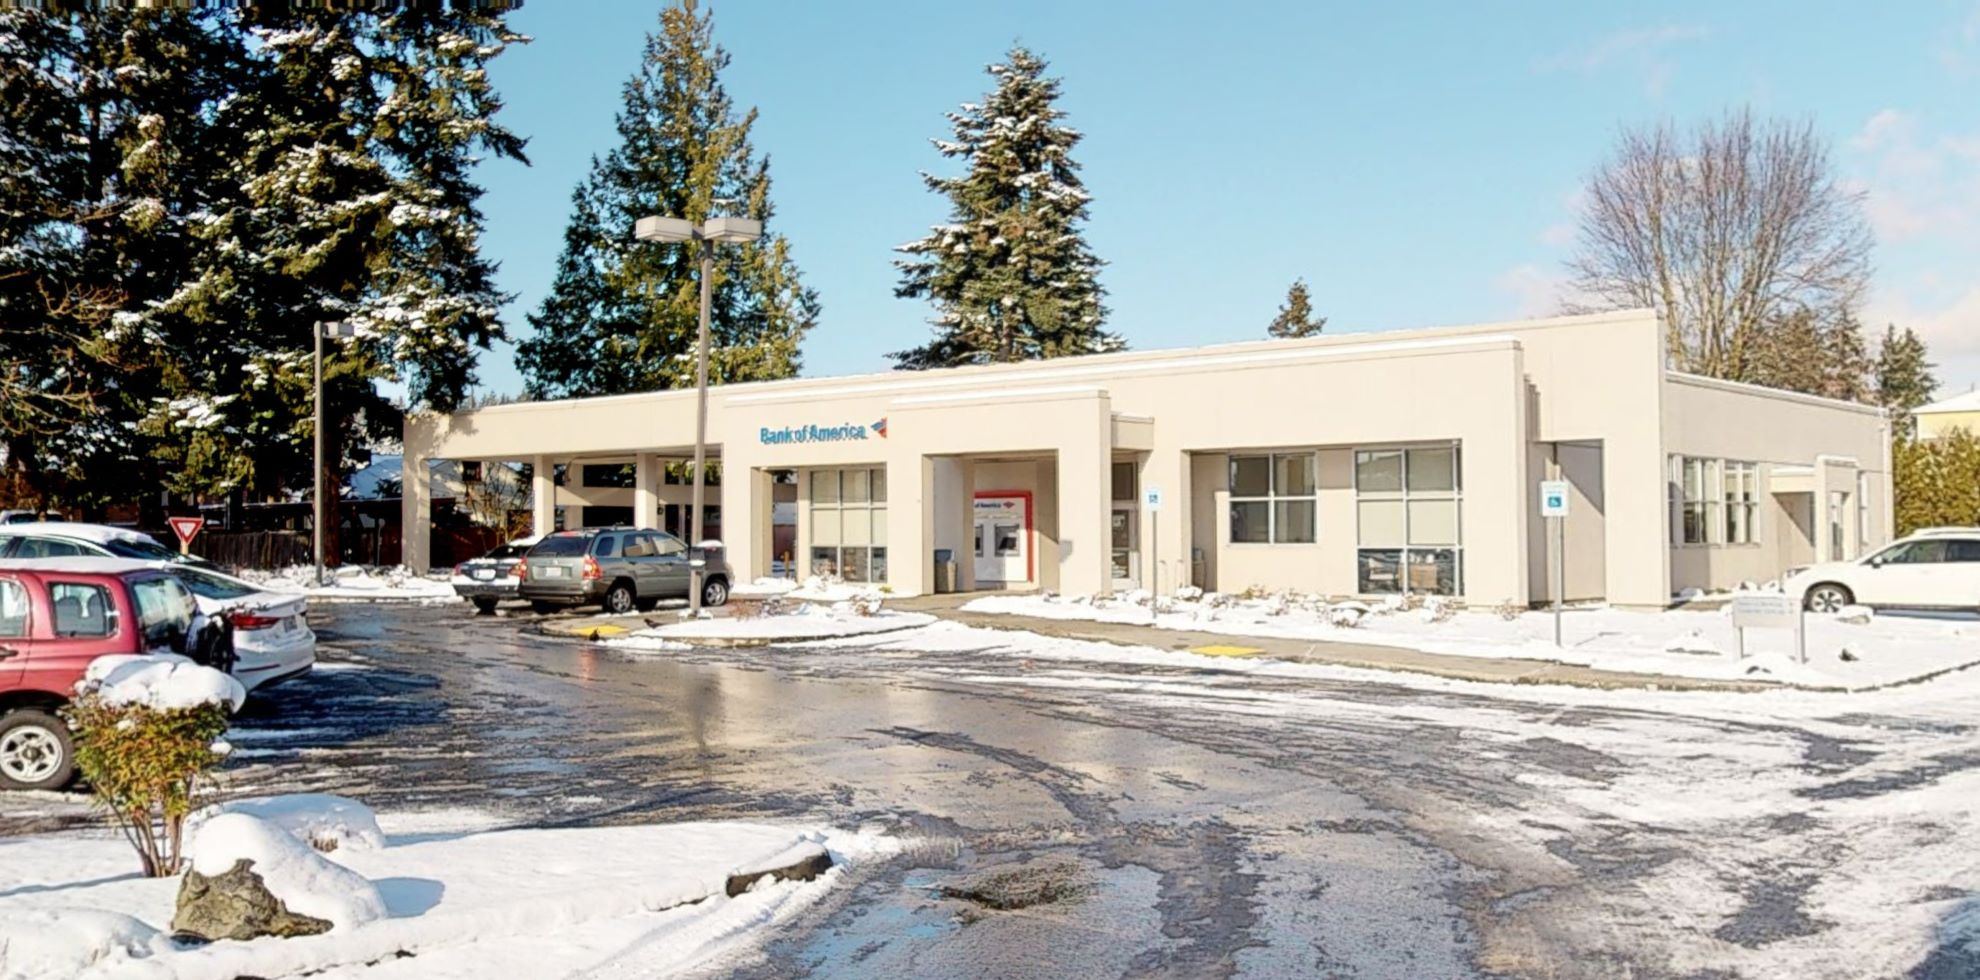 Bank of America financial center with walk-up ATM | 7110 NE Bothell Way, Kenmore, WA 98028